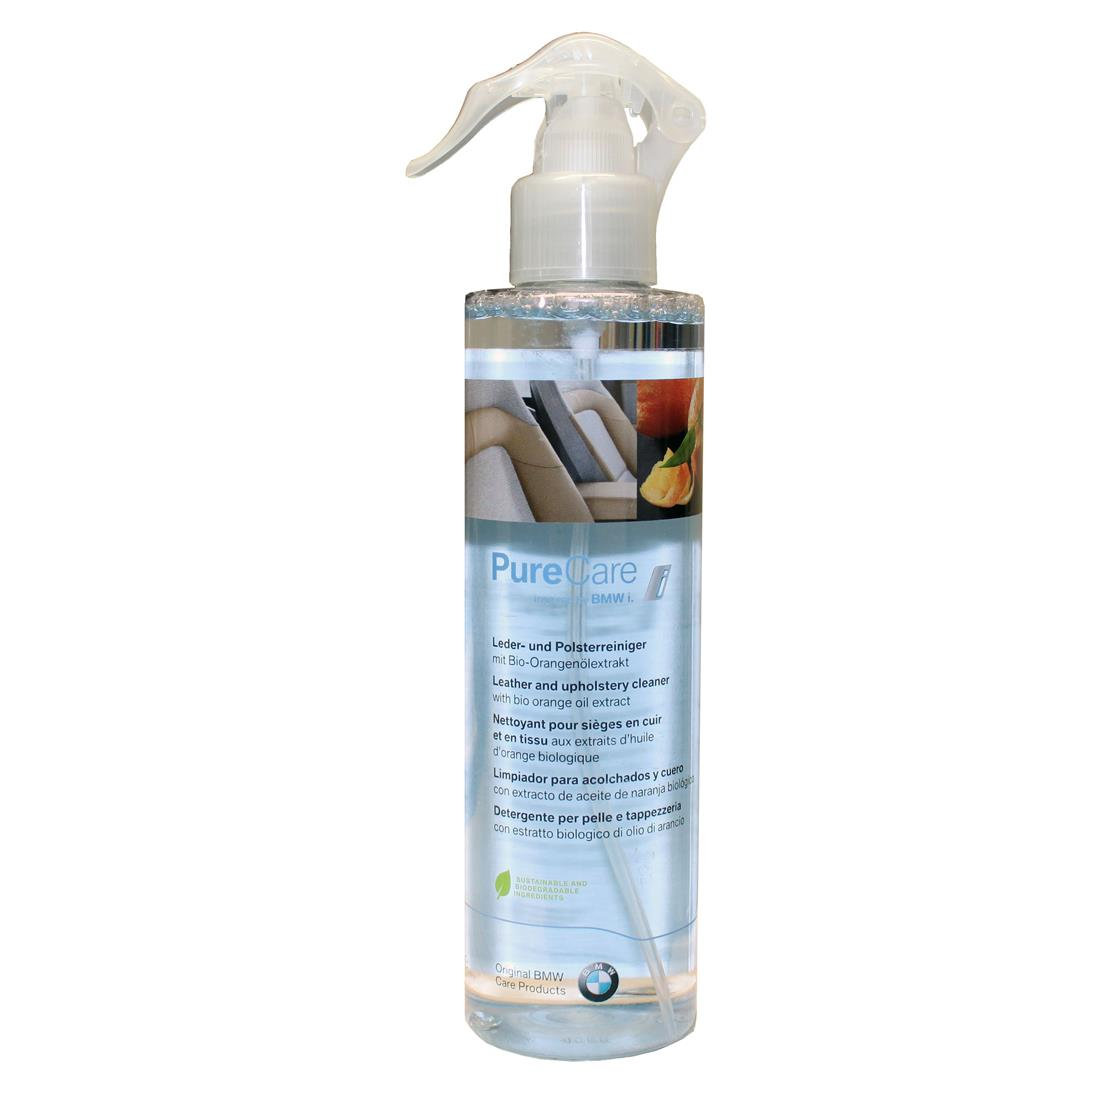 BMW PureCare Leather and Upholstery Cleaner